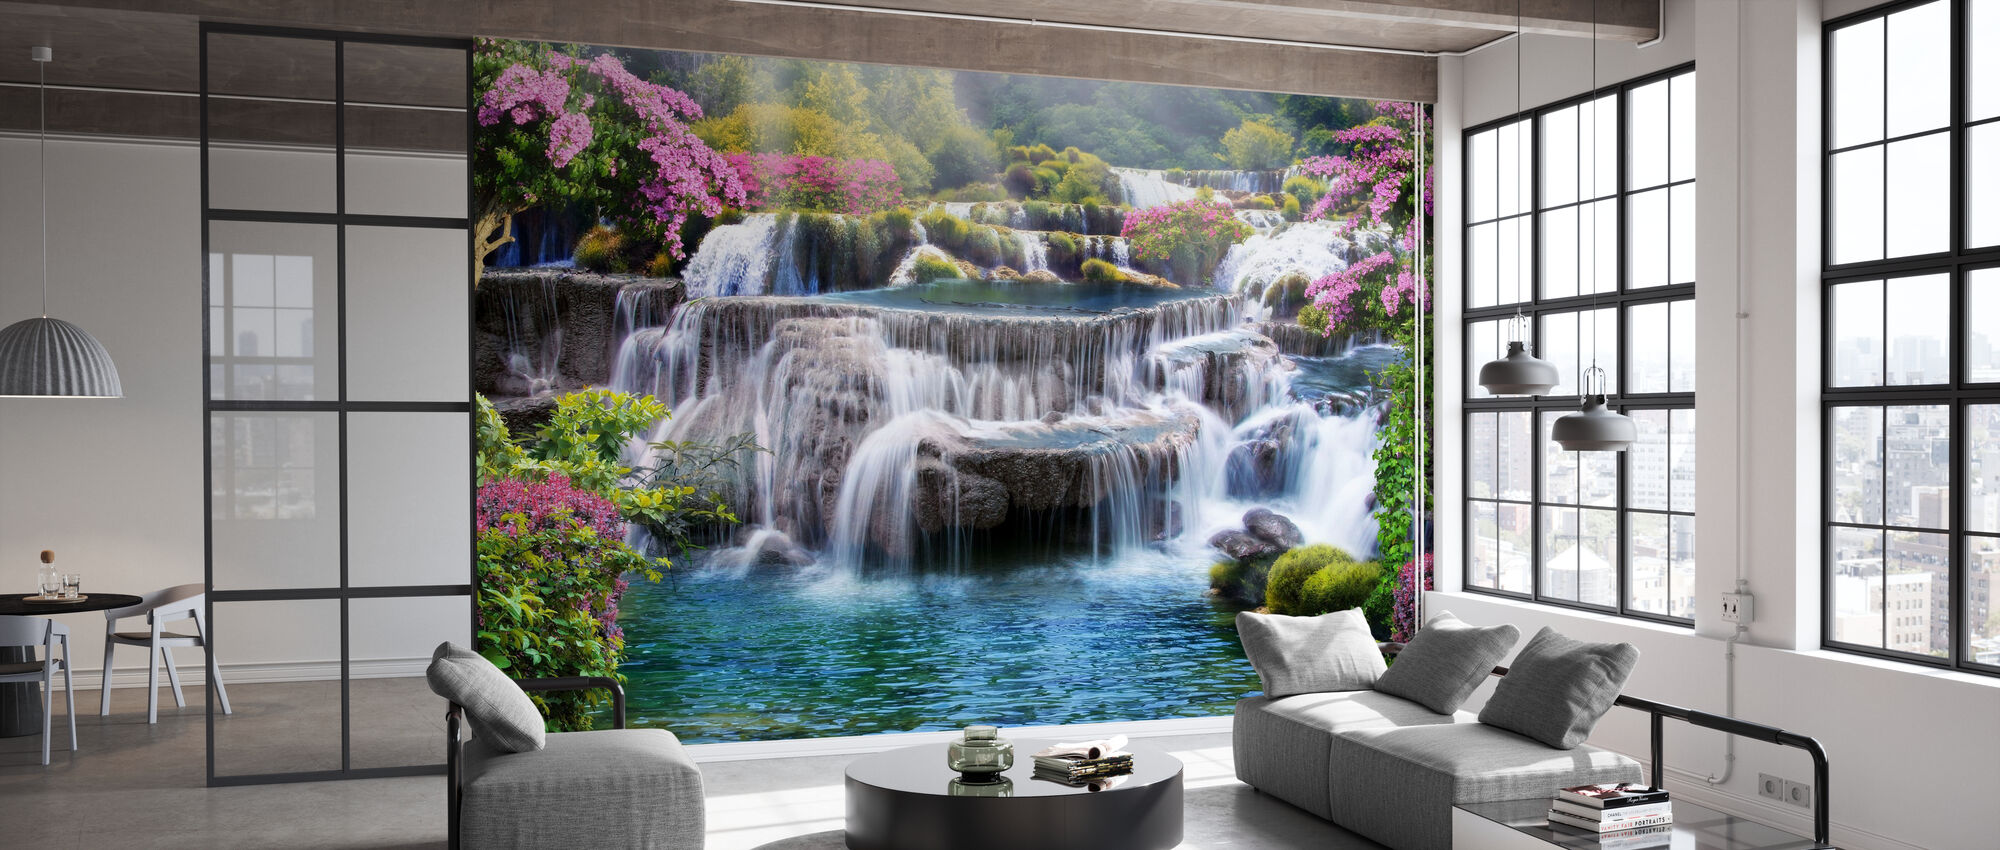 Tropical Waterfall - Wallpaper - Office